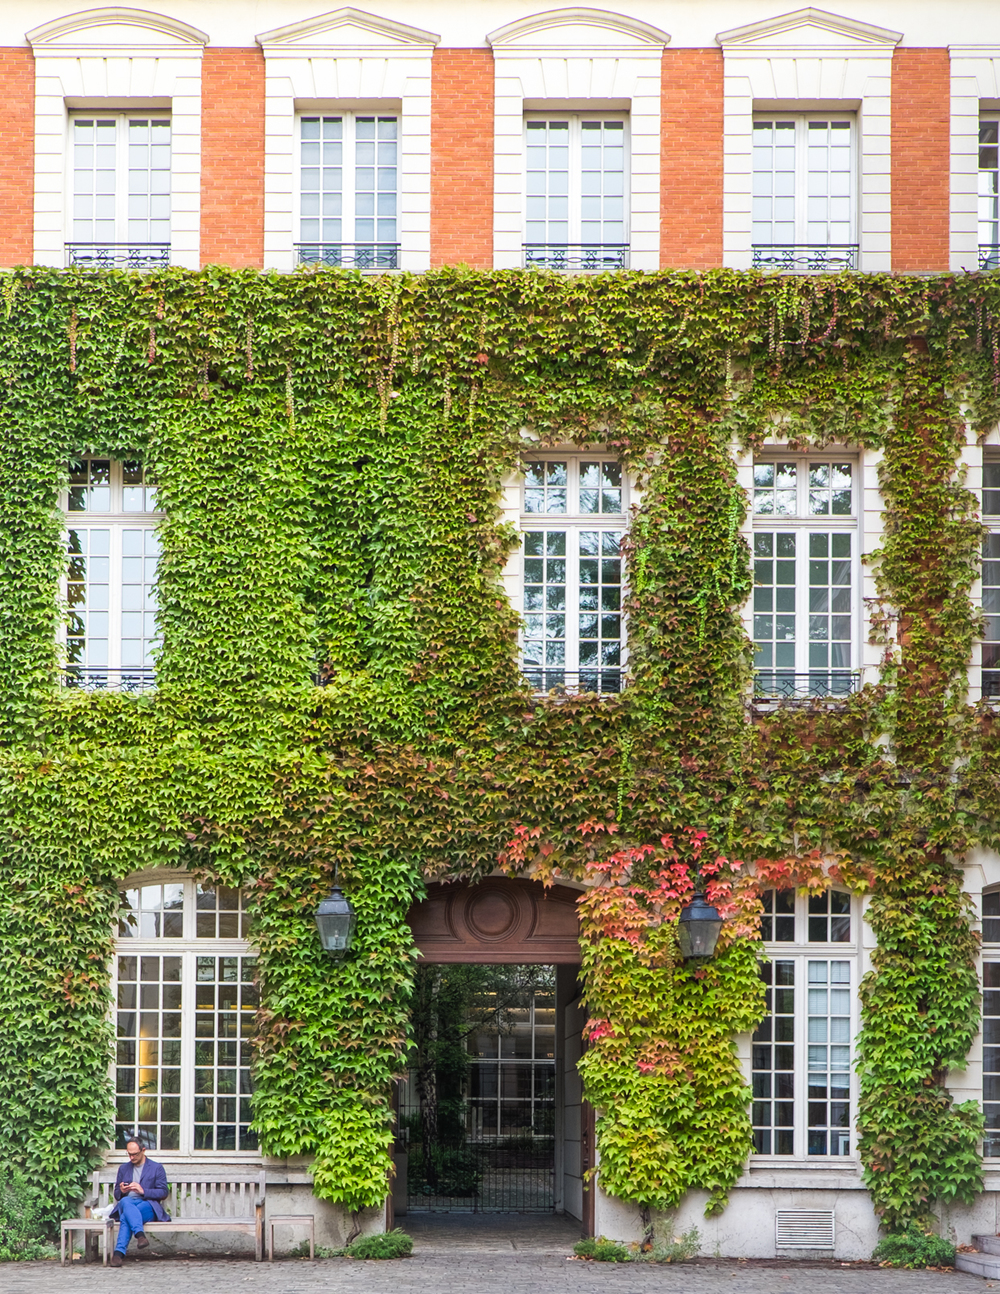 RUE DU PARC ROYAL, 75004    INSIDER TIP  | Walk too quickly on rue du Parc Royal in the Marais and you might miss this green stunner.     PHOTO TIP  | The best moment to photograph the building is between spring and fall when the leaves are at their most lush.